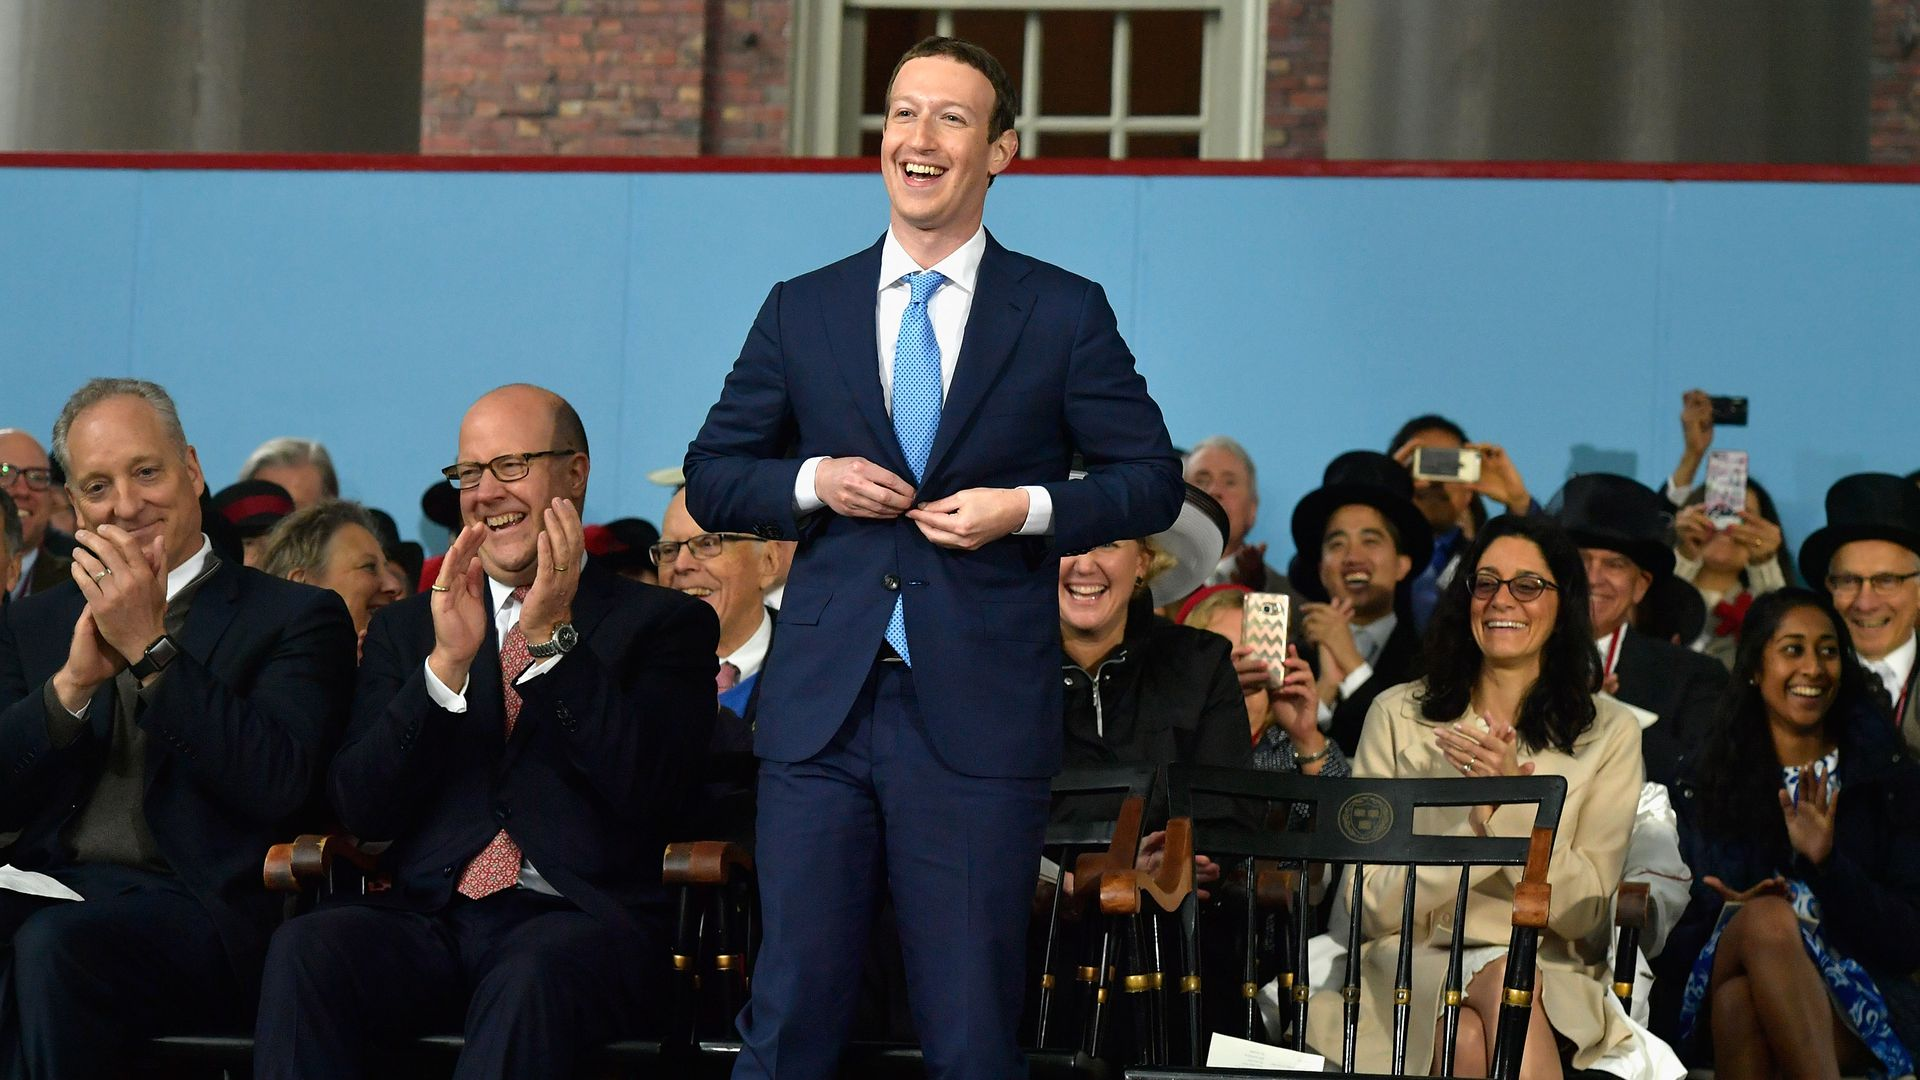 Mark Zuckerberg wearing a suit